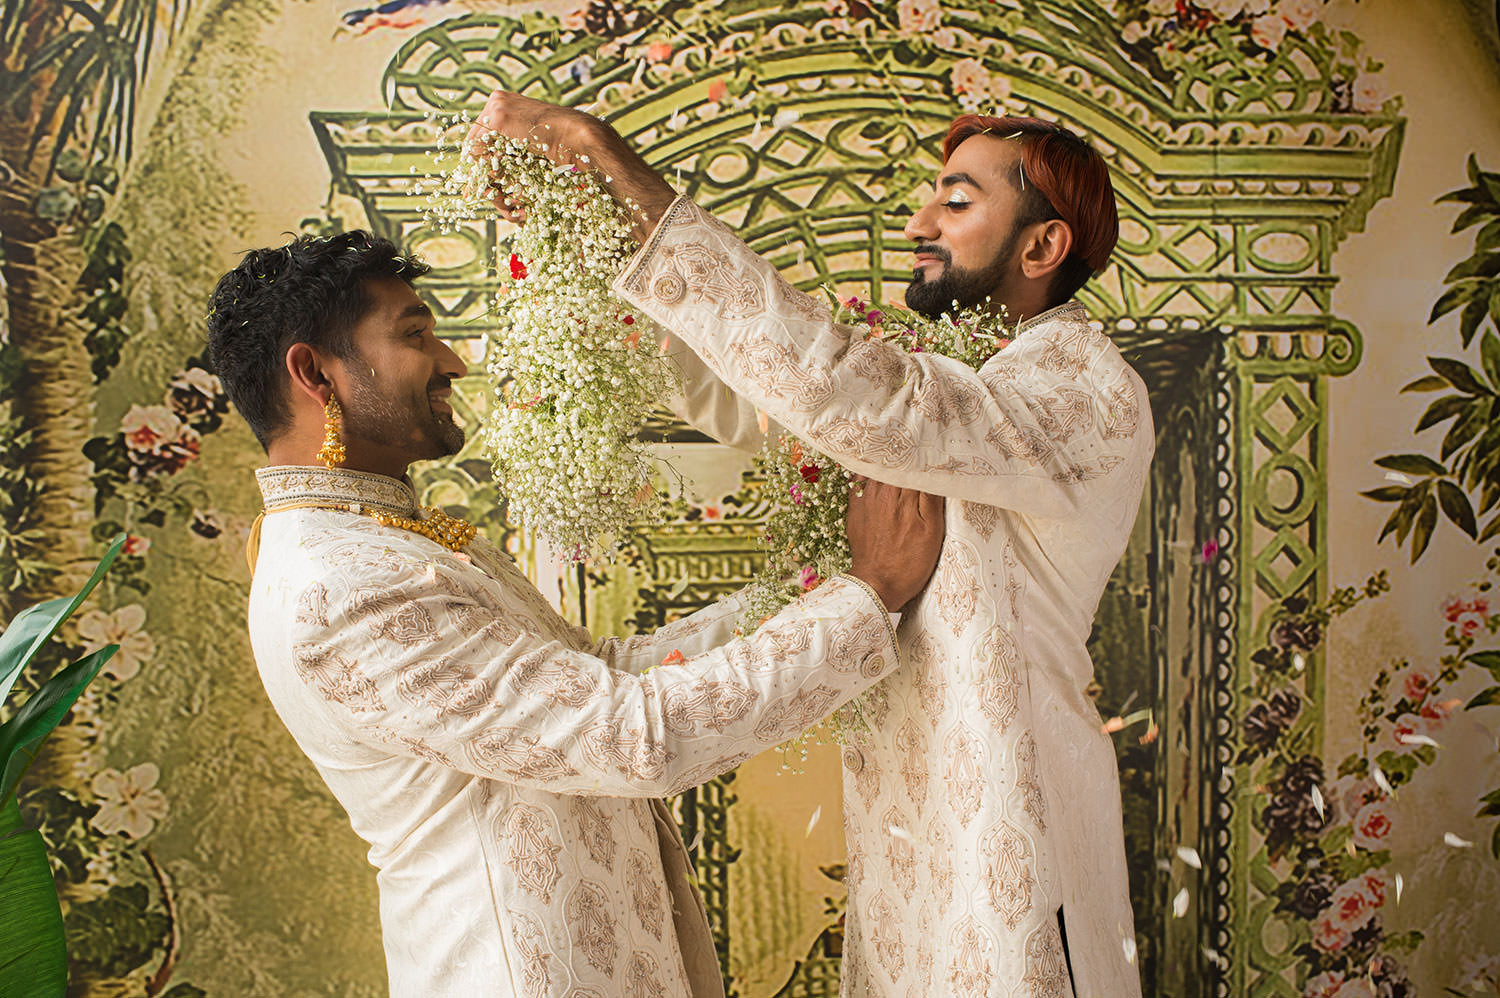 Two male members of the South Asian LGBTQ community exchange traditional flower garlands as part of a photo shoot.